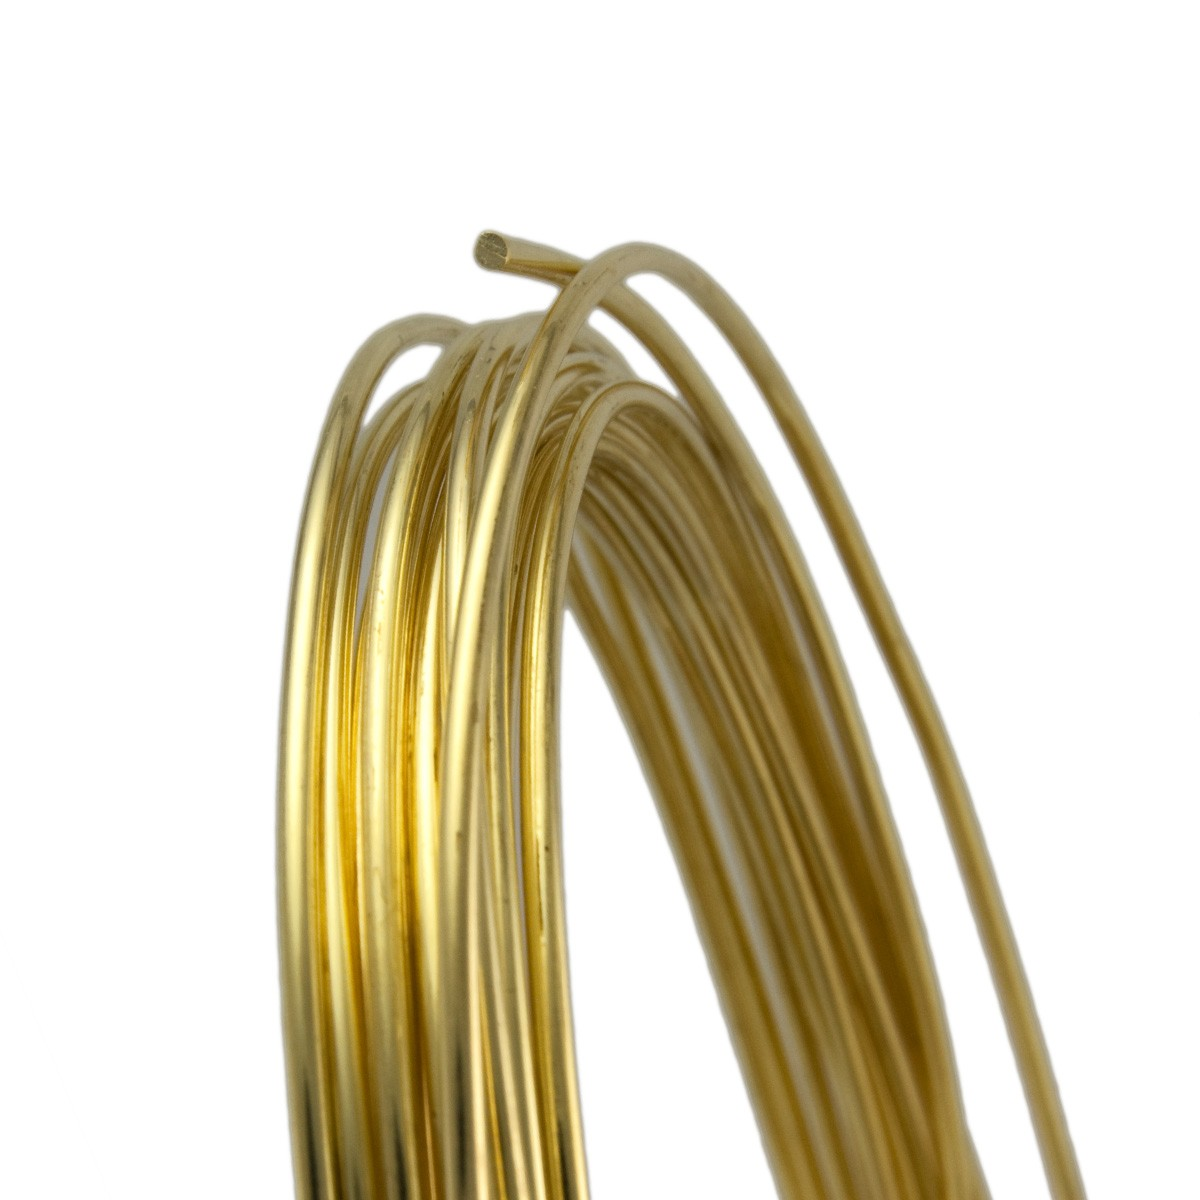 10 Gauge Round Dead Soft Yellow Brass Wire